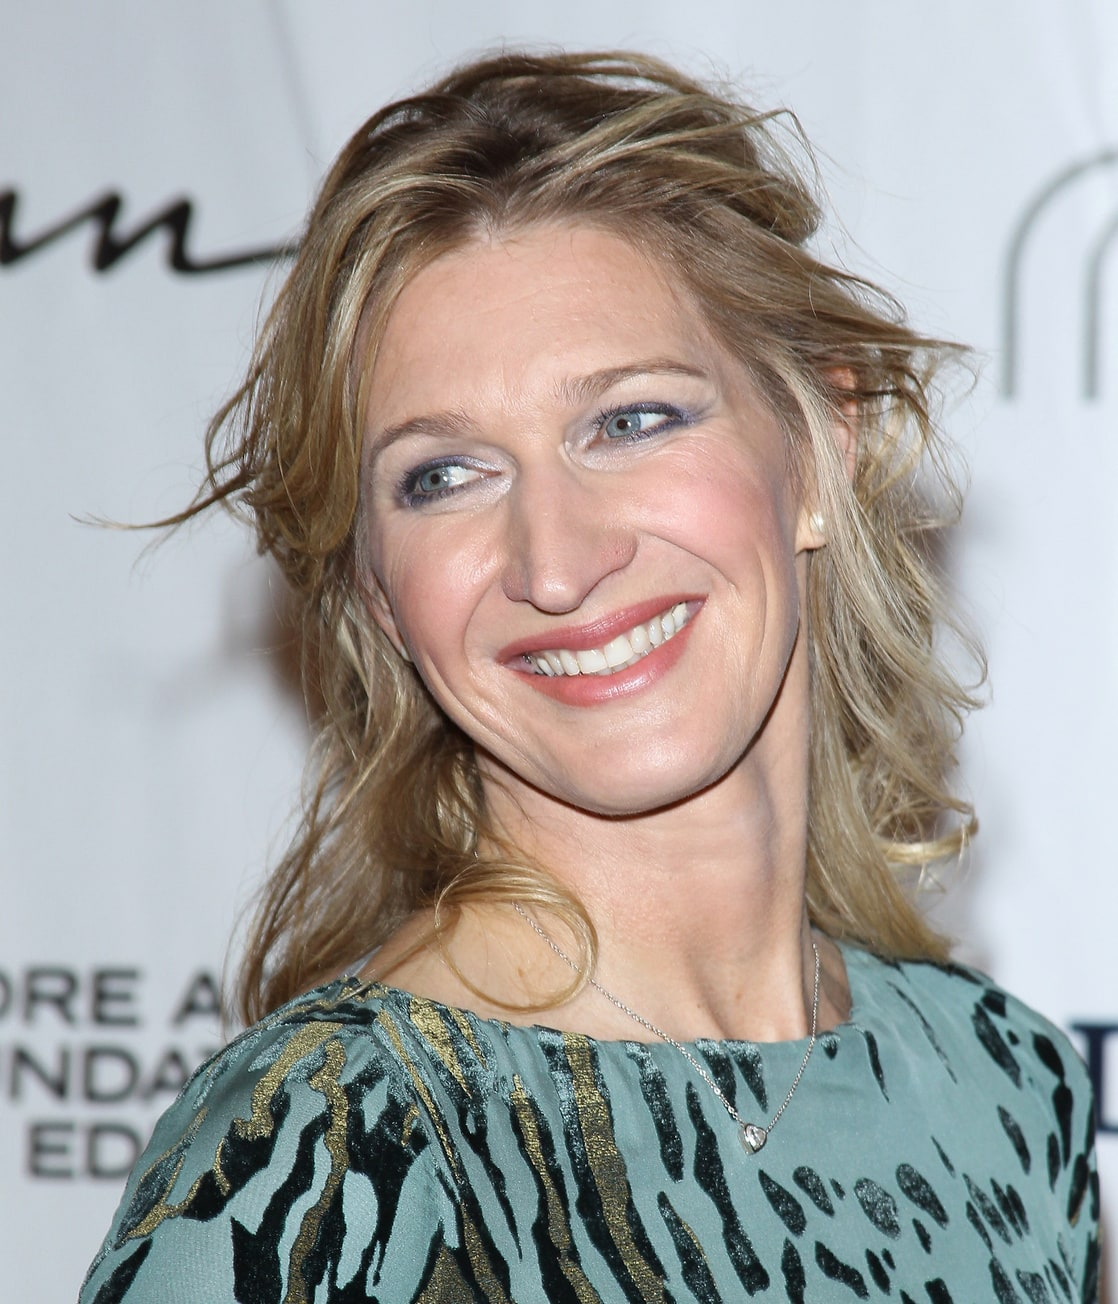 Images Steffi Graf Awesome picture of steffi graf